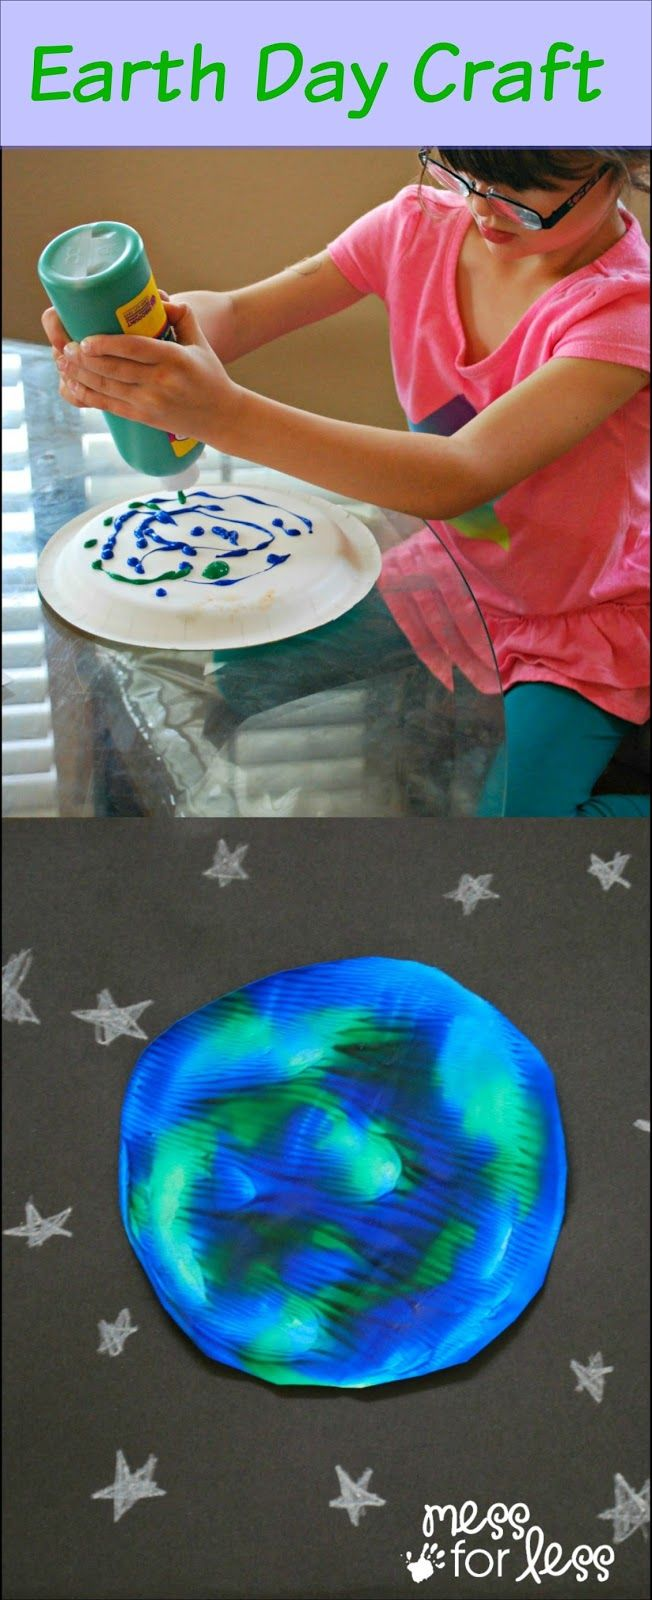 Earth day is coming up and we have been getting ready by doing some fun earth day activities. Recently, we used a paper plate and some paint to create an eye catchingPaper Plate Rainbow Craft. When we were making that, I starting thinking about how the technique we used, would be a great way to …